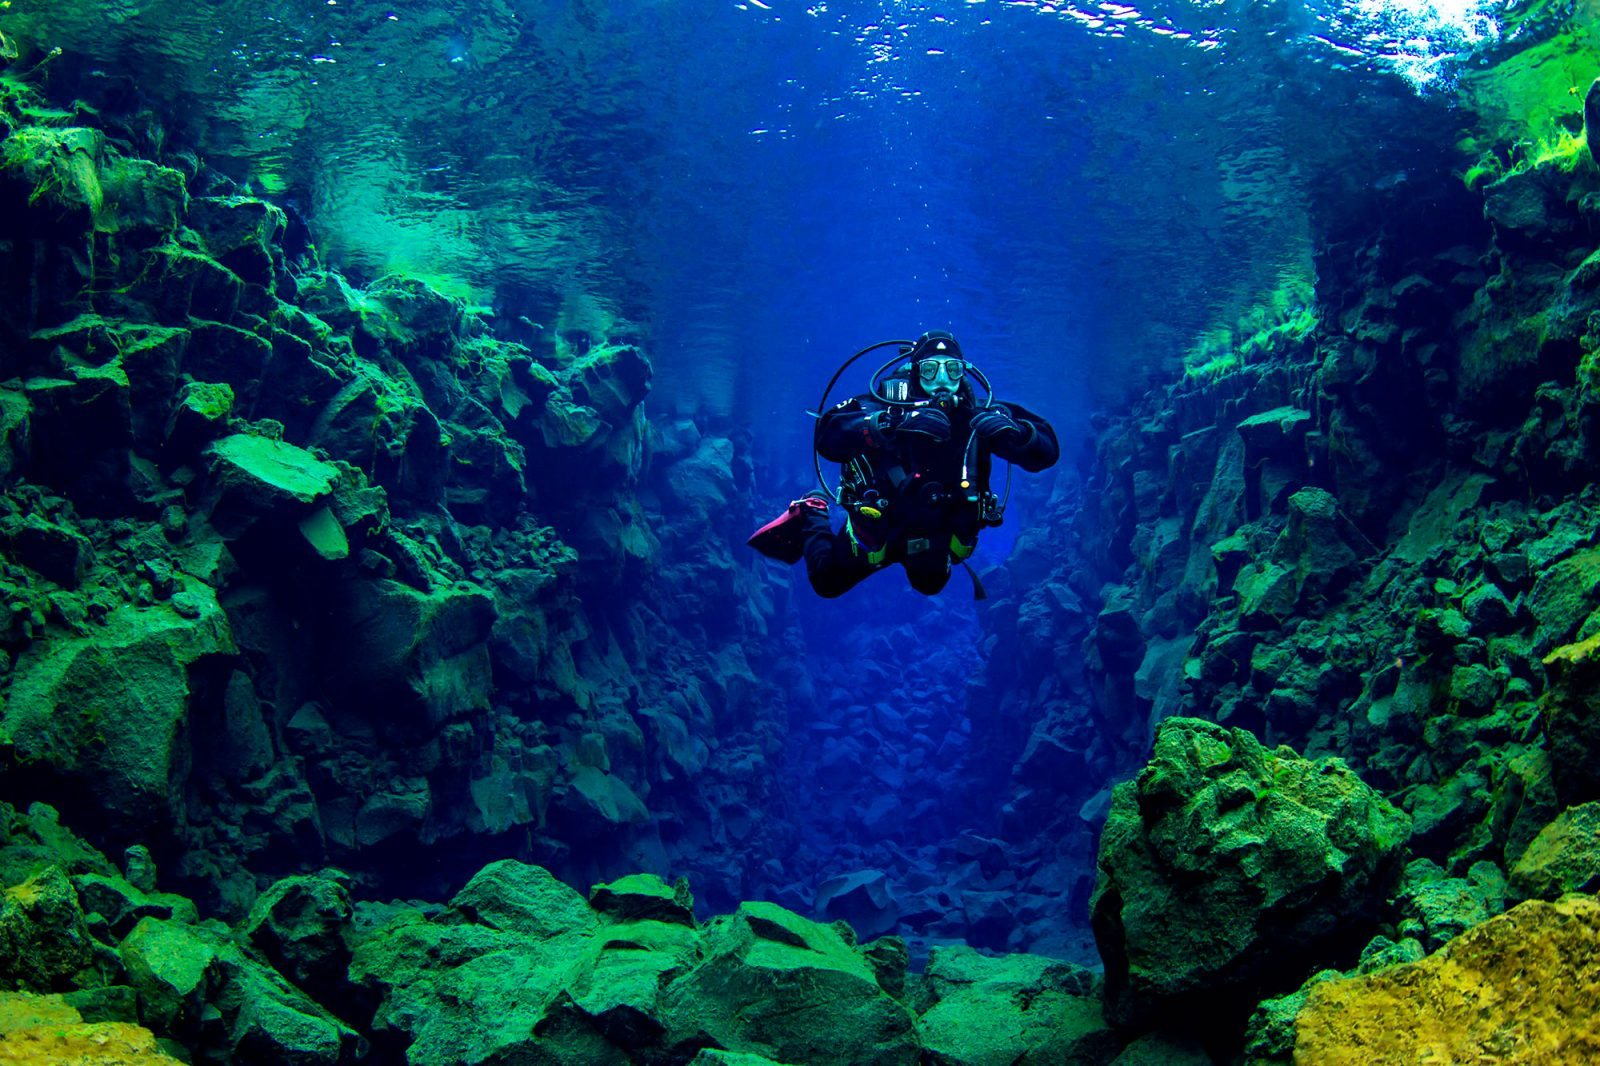 Scuba diver on Silfra fissure diving tour in Iceland